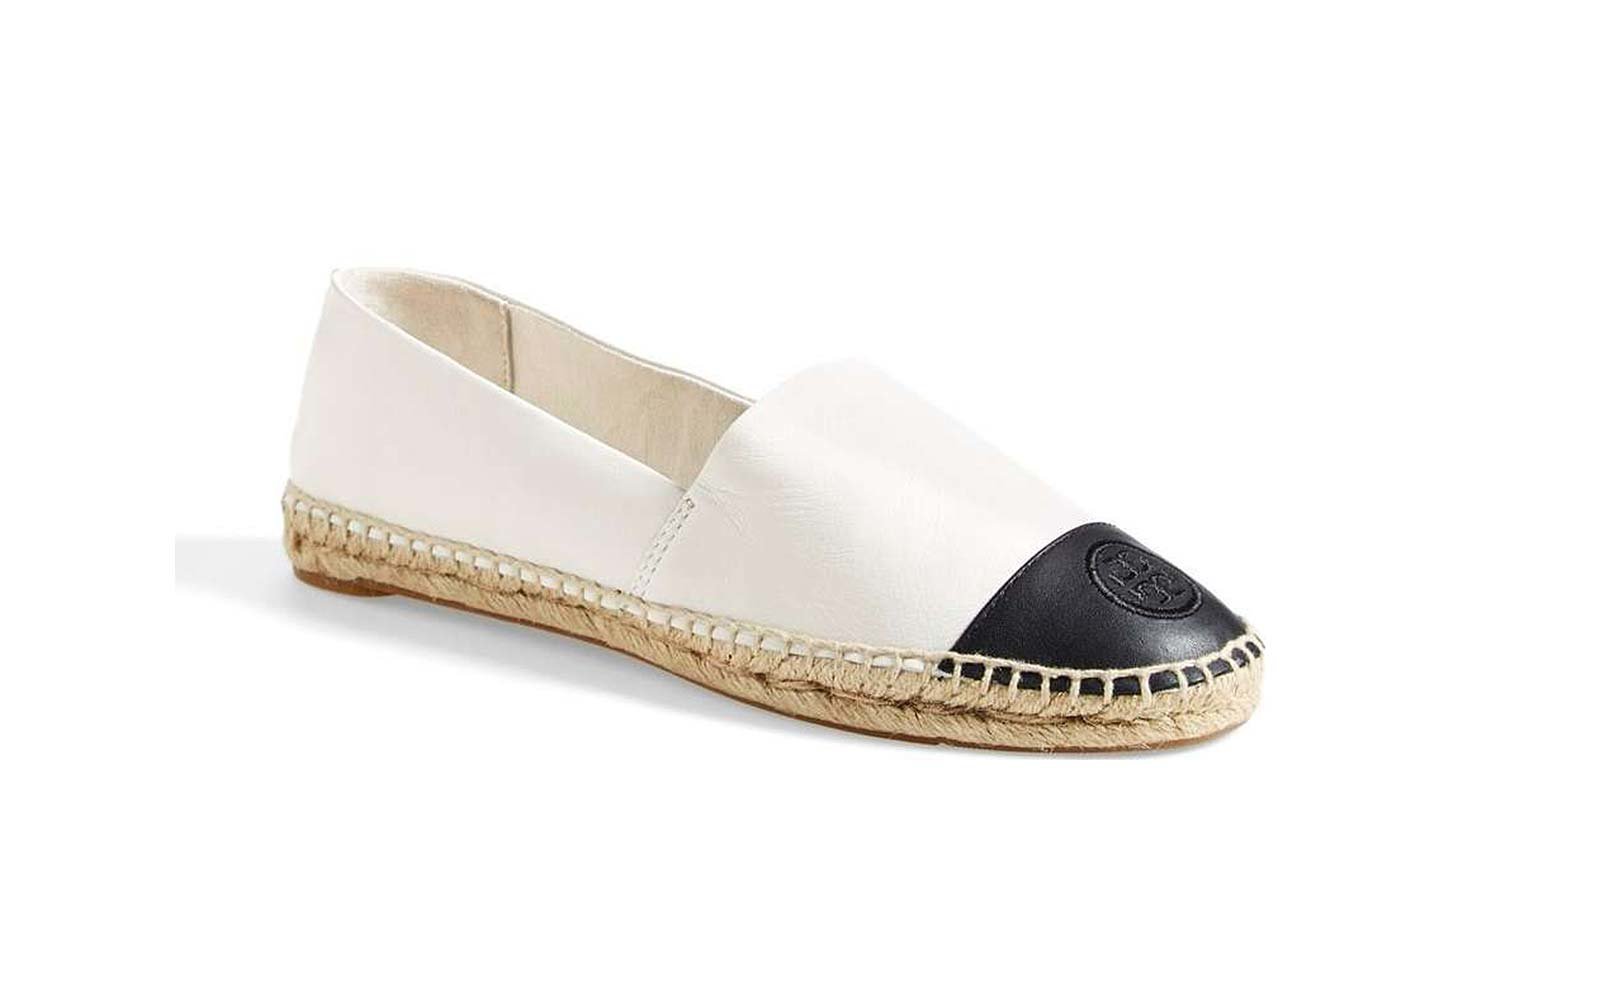 Tory Burch Colorblock Flats Espadrille